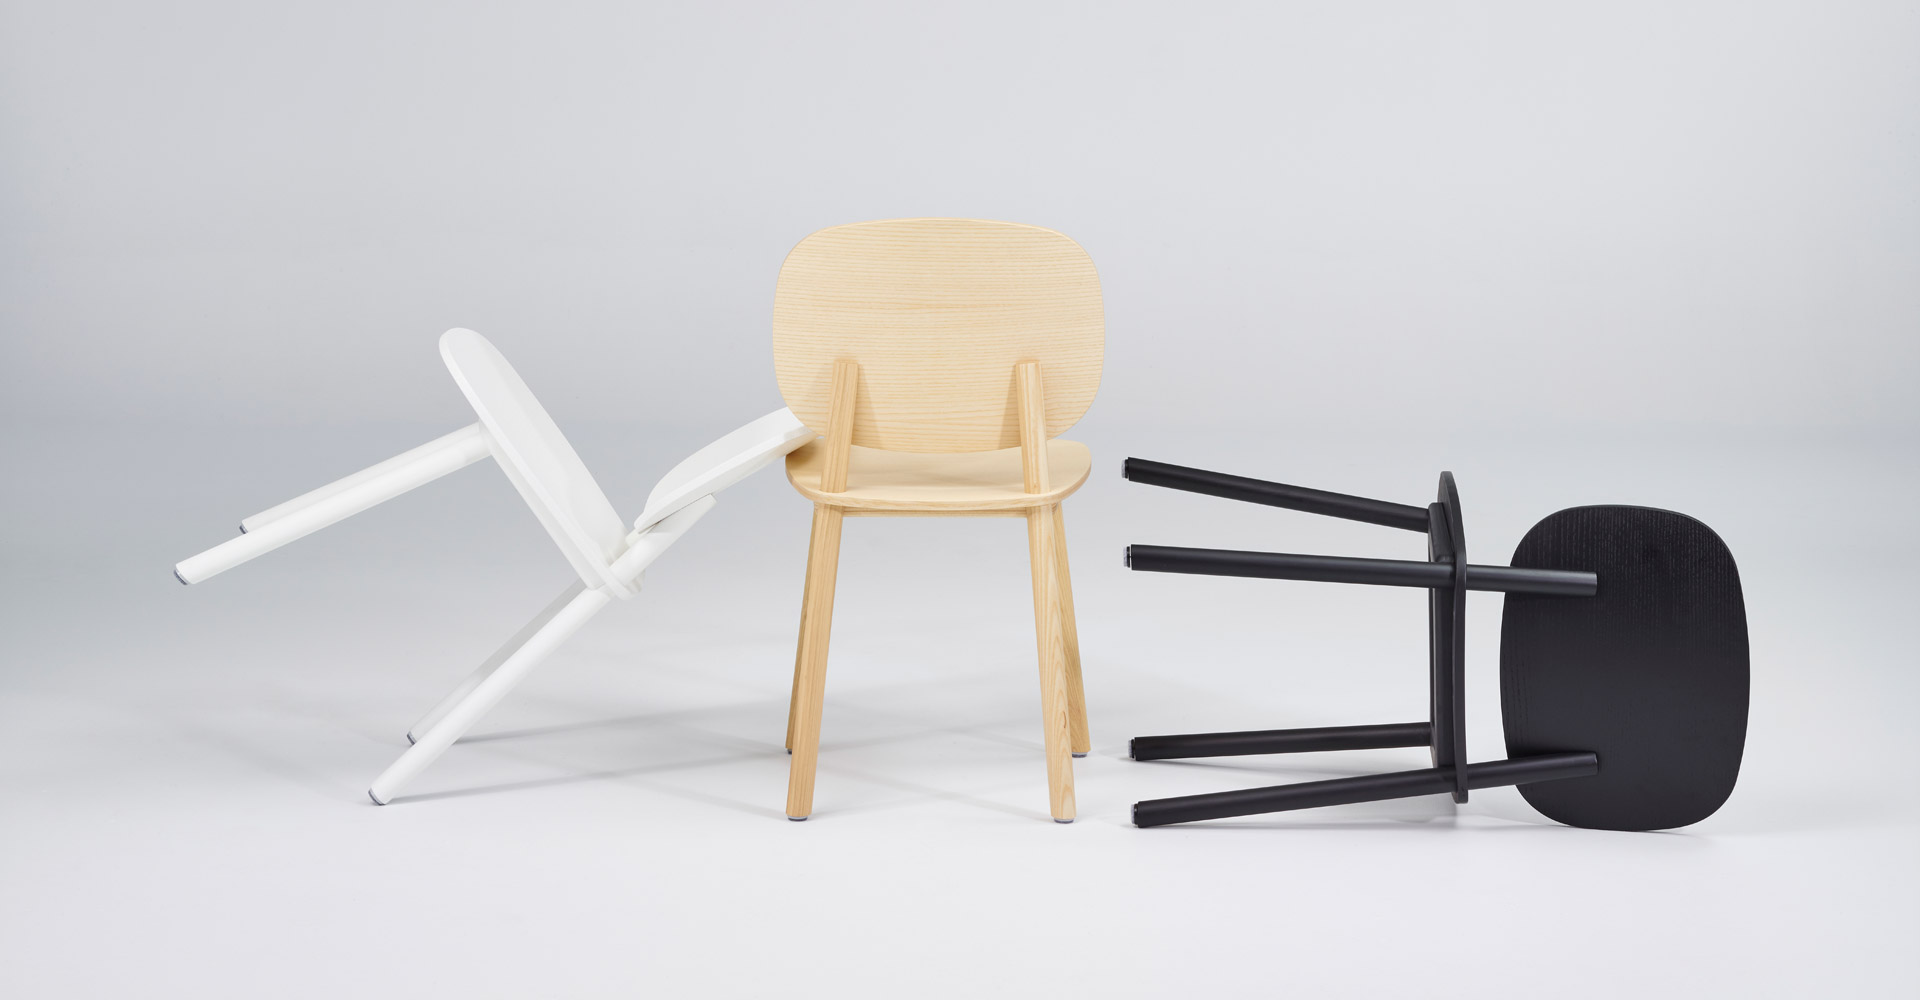 benoit-deneufbourg_paddle-chair_00